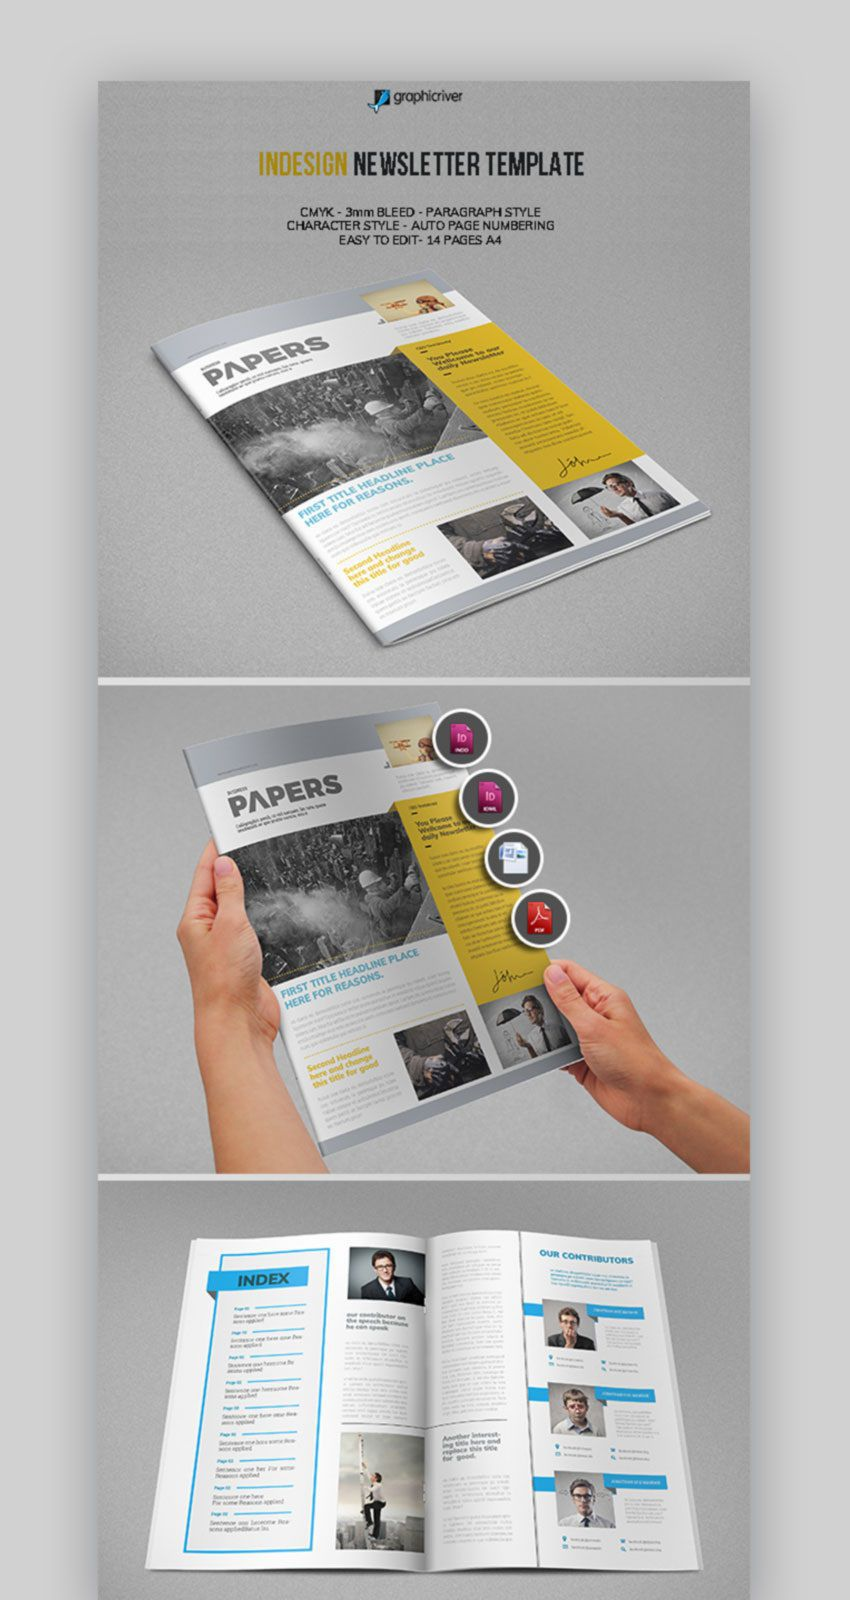 008 Stupendou Word Newsletter Template Free Download Image  Document M 2007 DesignFull